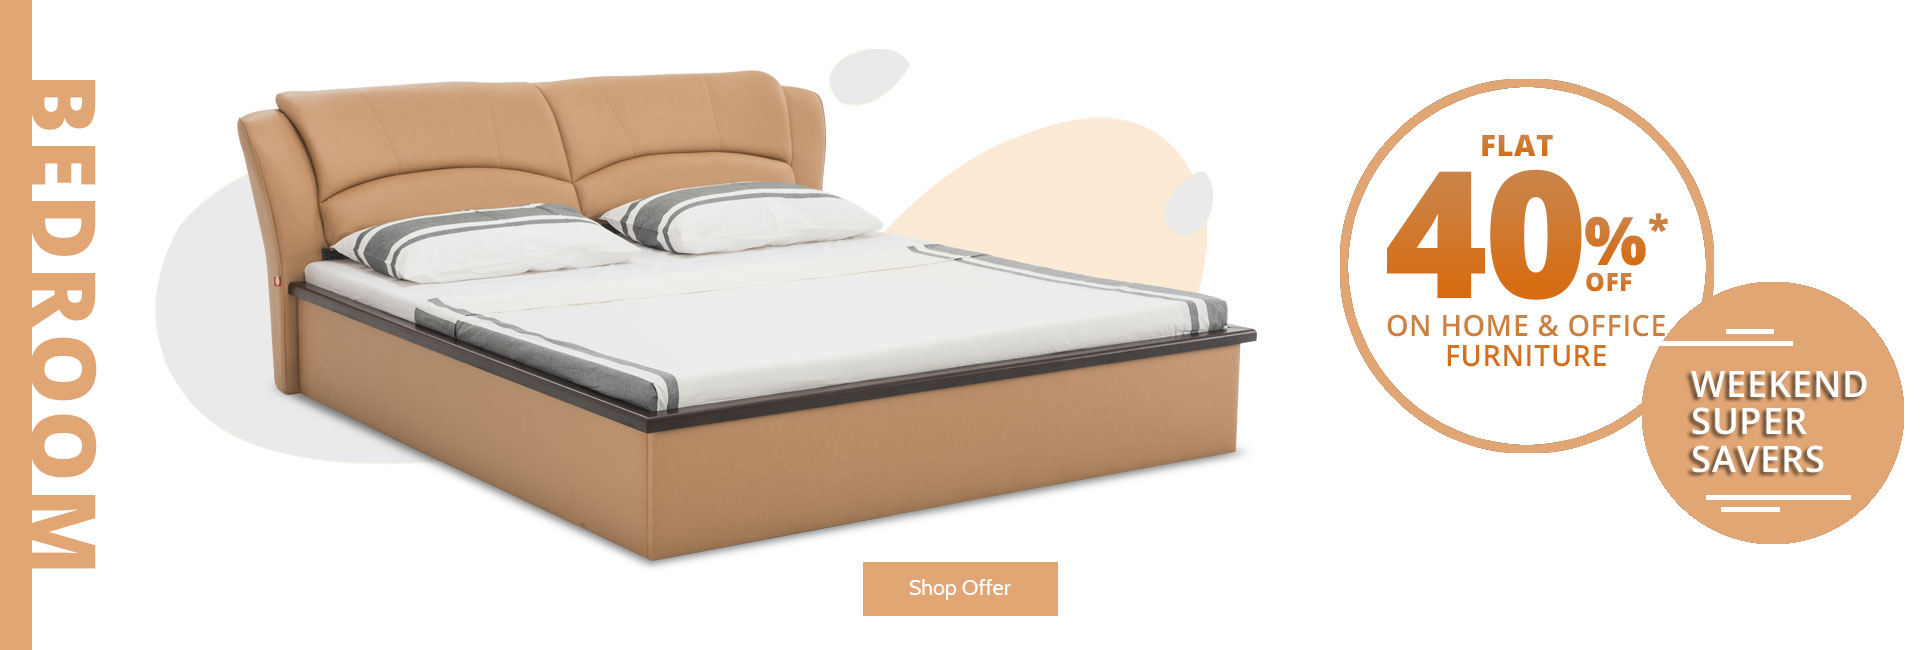 Flat 40% off on bedroom furniture !